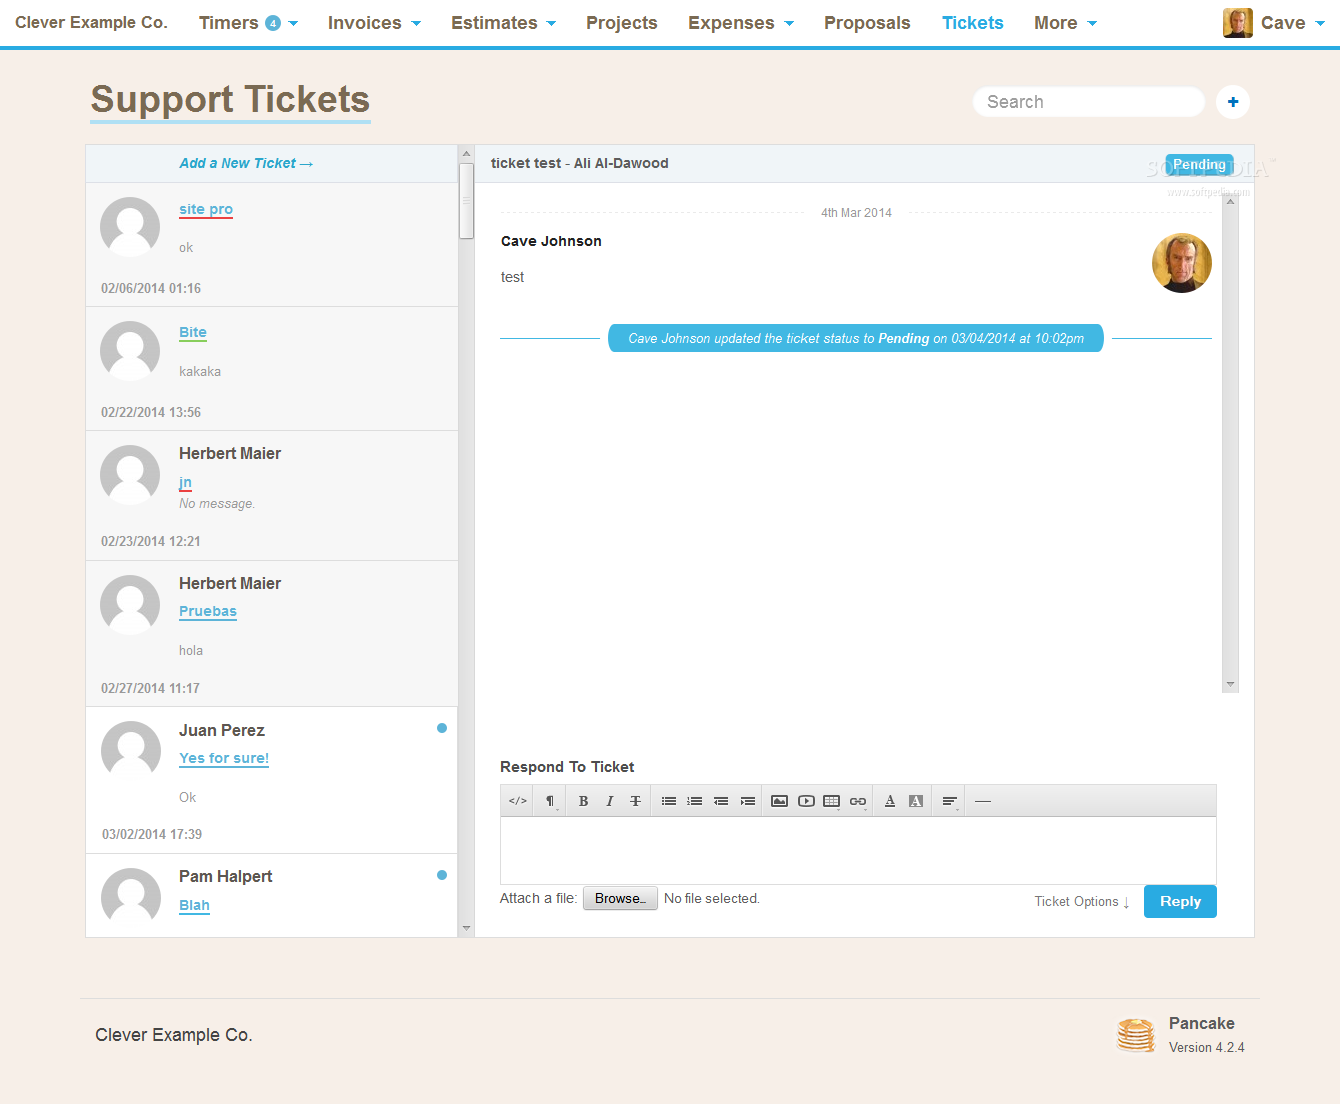 Pancake - Customers can also issue support tickets for their applications